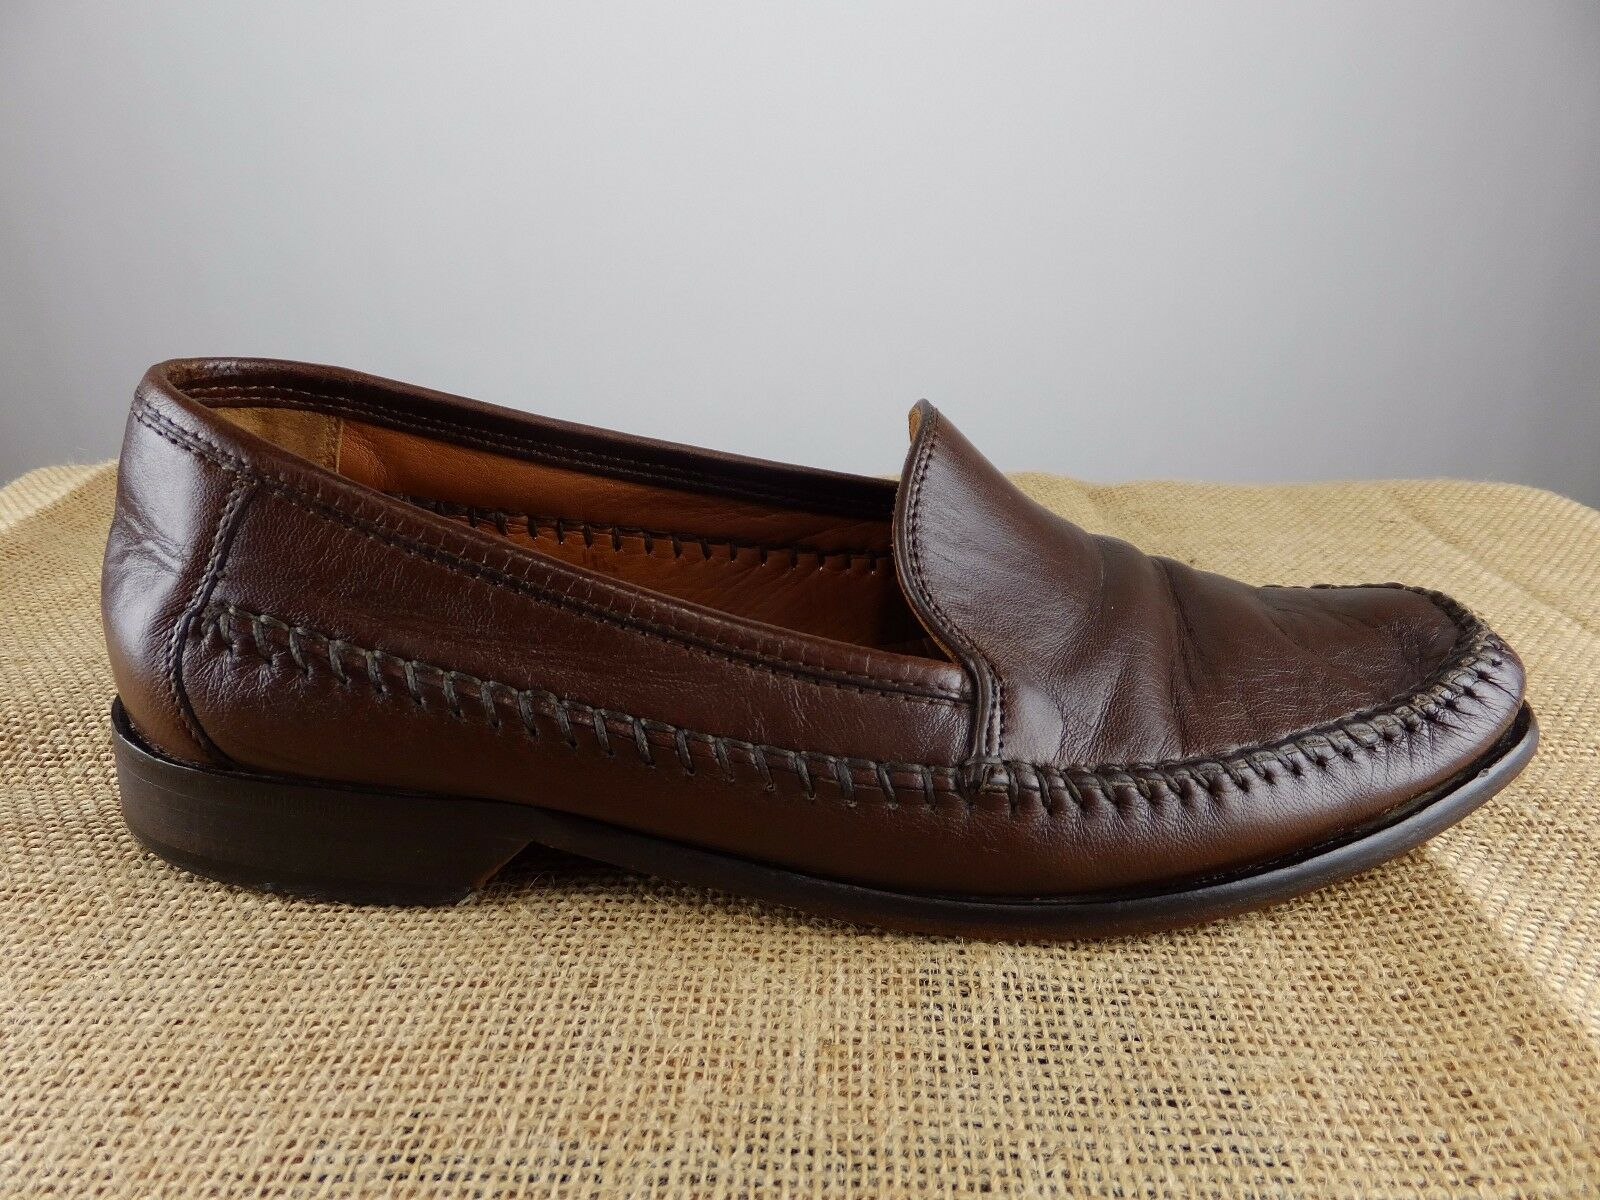 CALZOLERIA TOSCANA Hefatto Loafer Slip On Marronee Leather sautope Men 9 D M Sautope classeiche da uomo